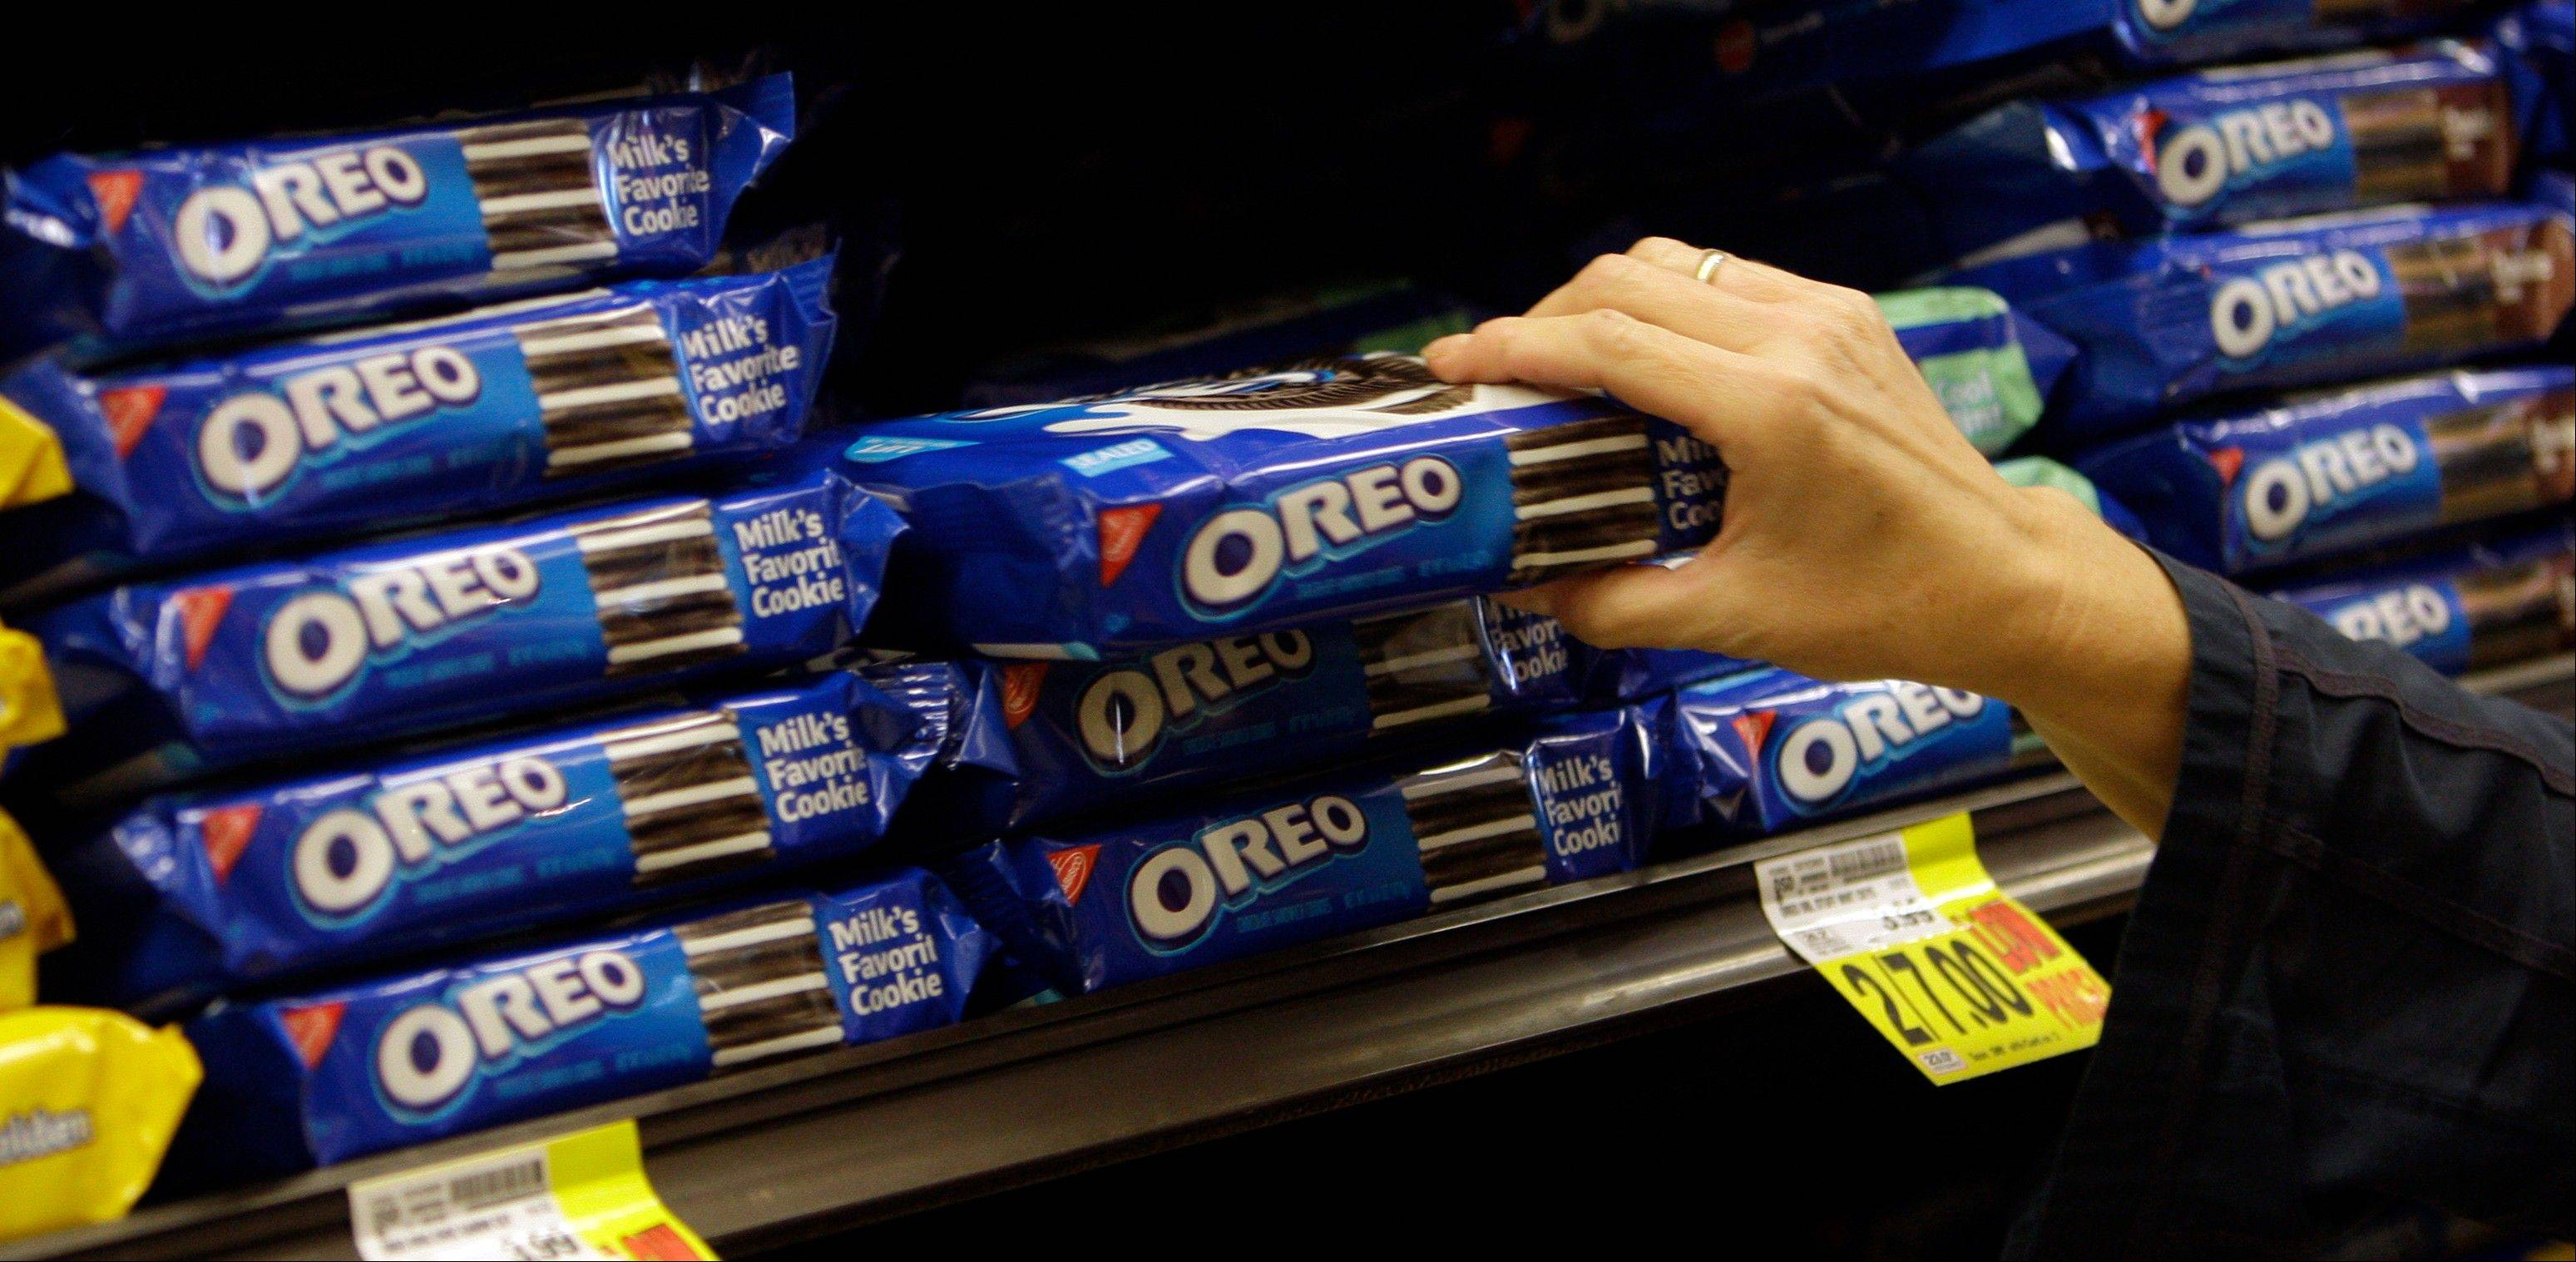 Oreo cookies by Nabisco are one of Mondelez's best known products. Formerly a part of Kraft Foods, Mondelez also produces Trident gum and Cadbury chocolates.